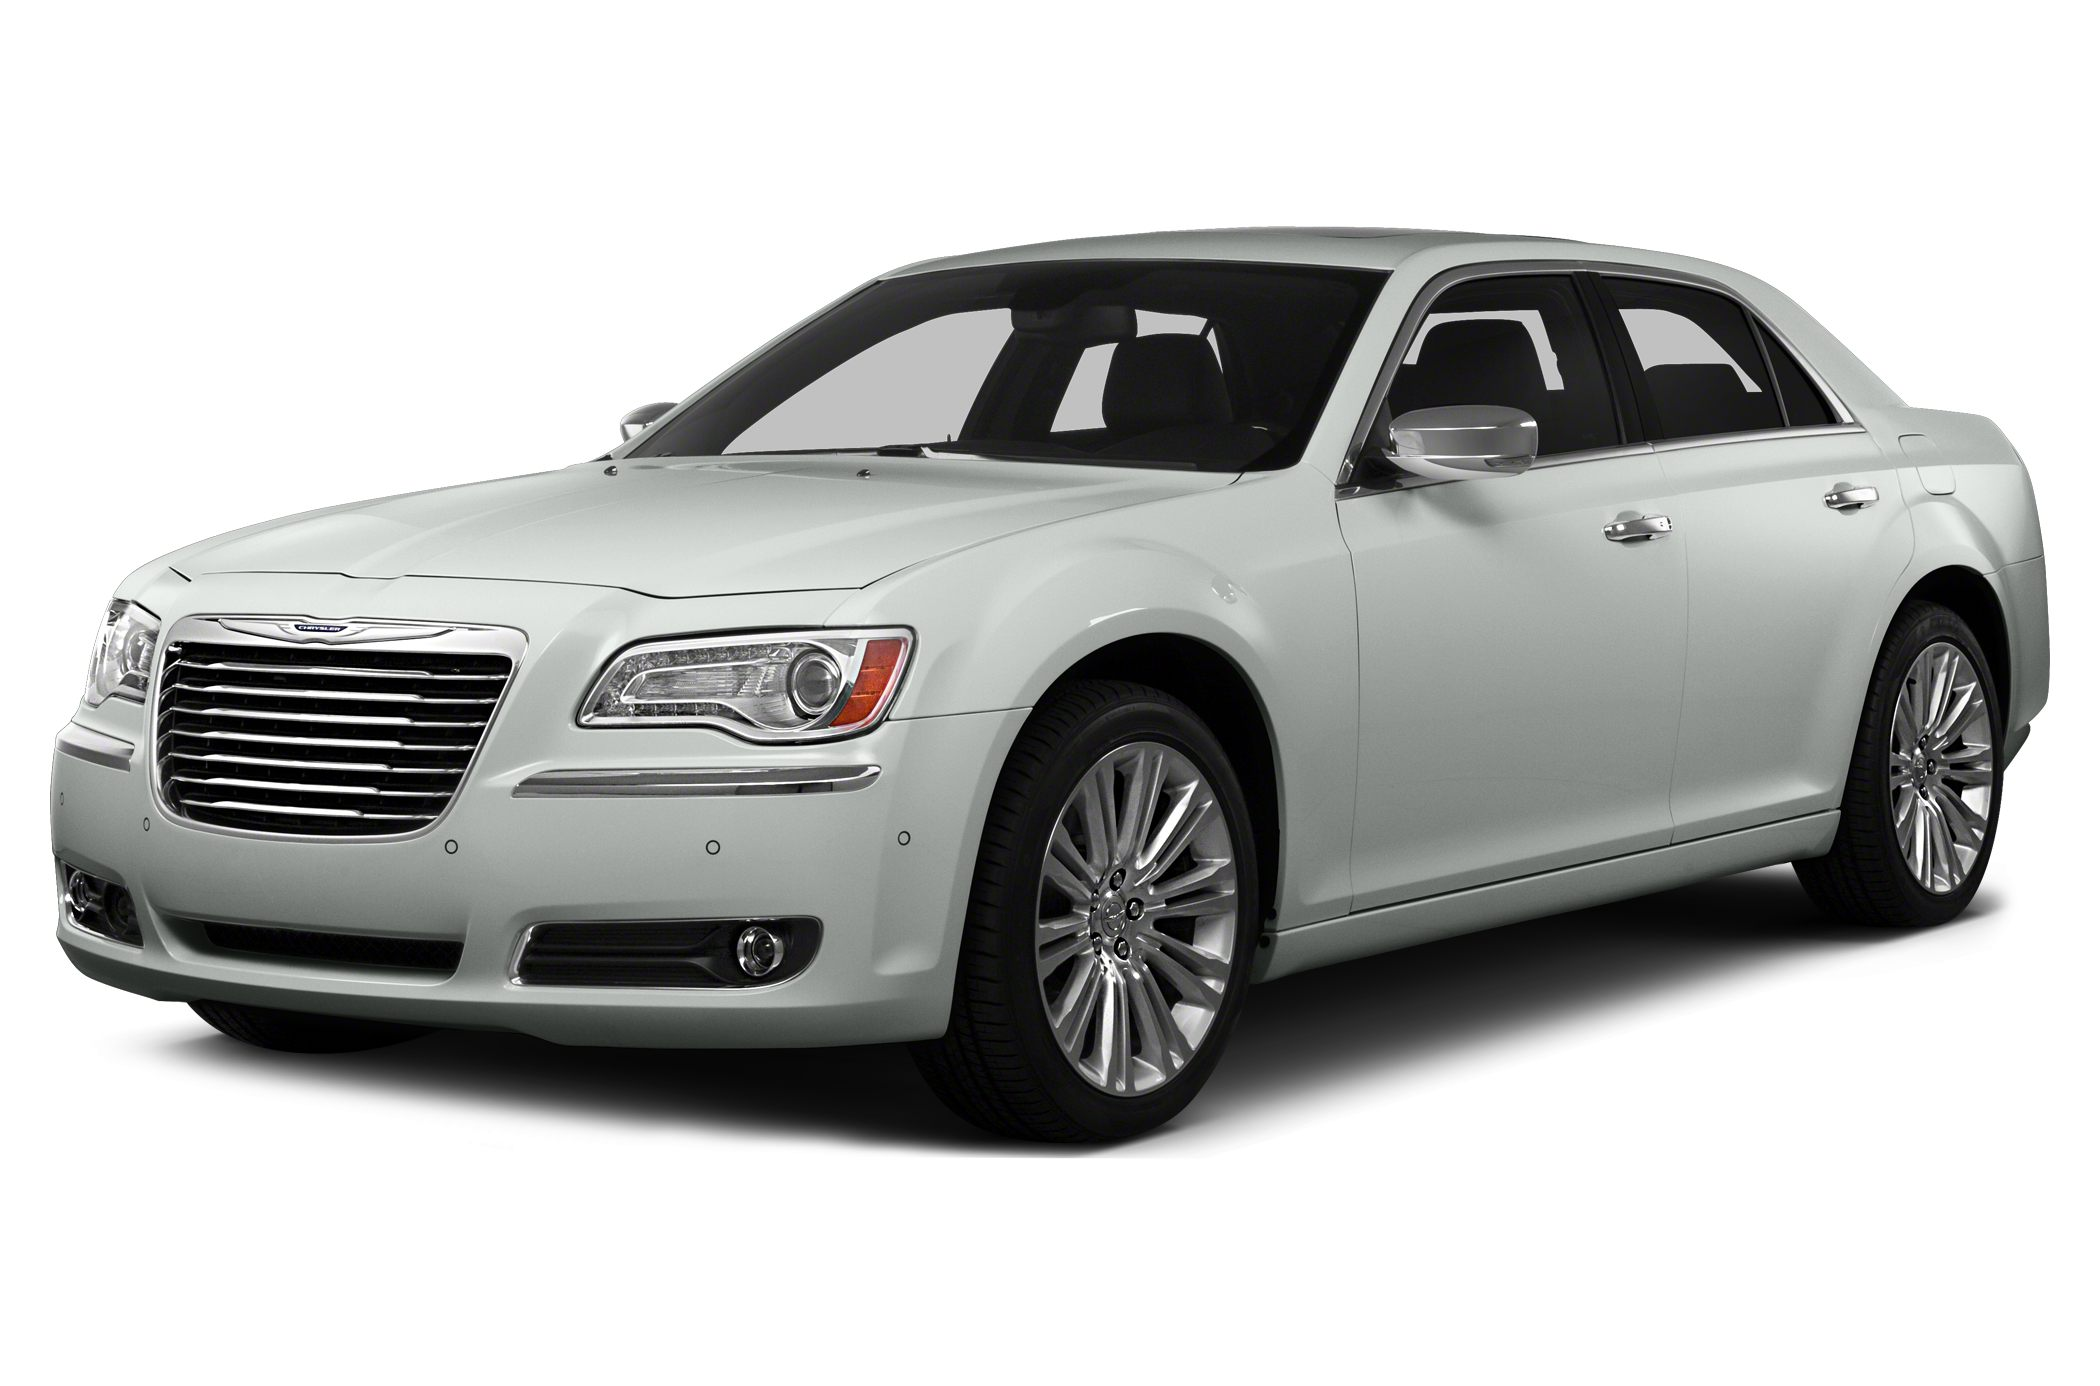 2014 Chrysler 300C Base 2014 300 C - Clean CARFAX One Owner Rear Back-Up CameraPower Tilt Whee